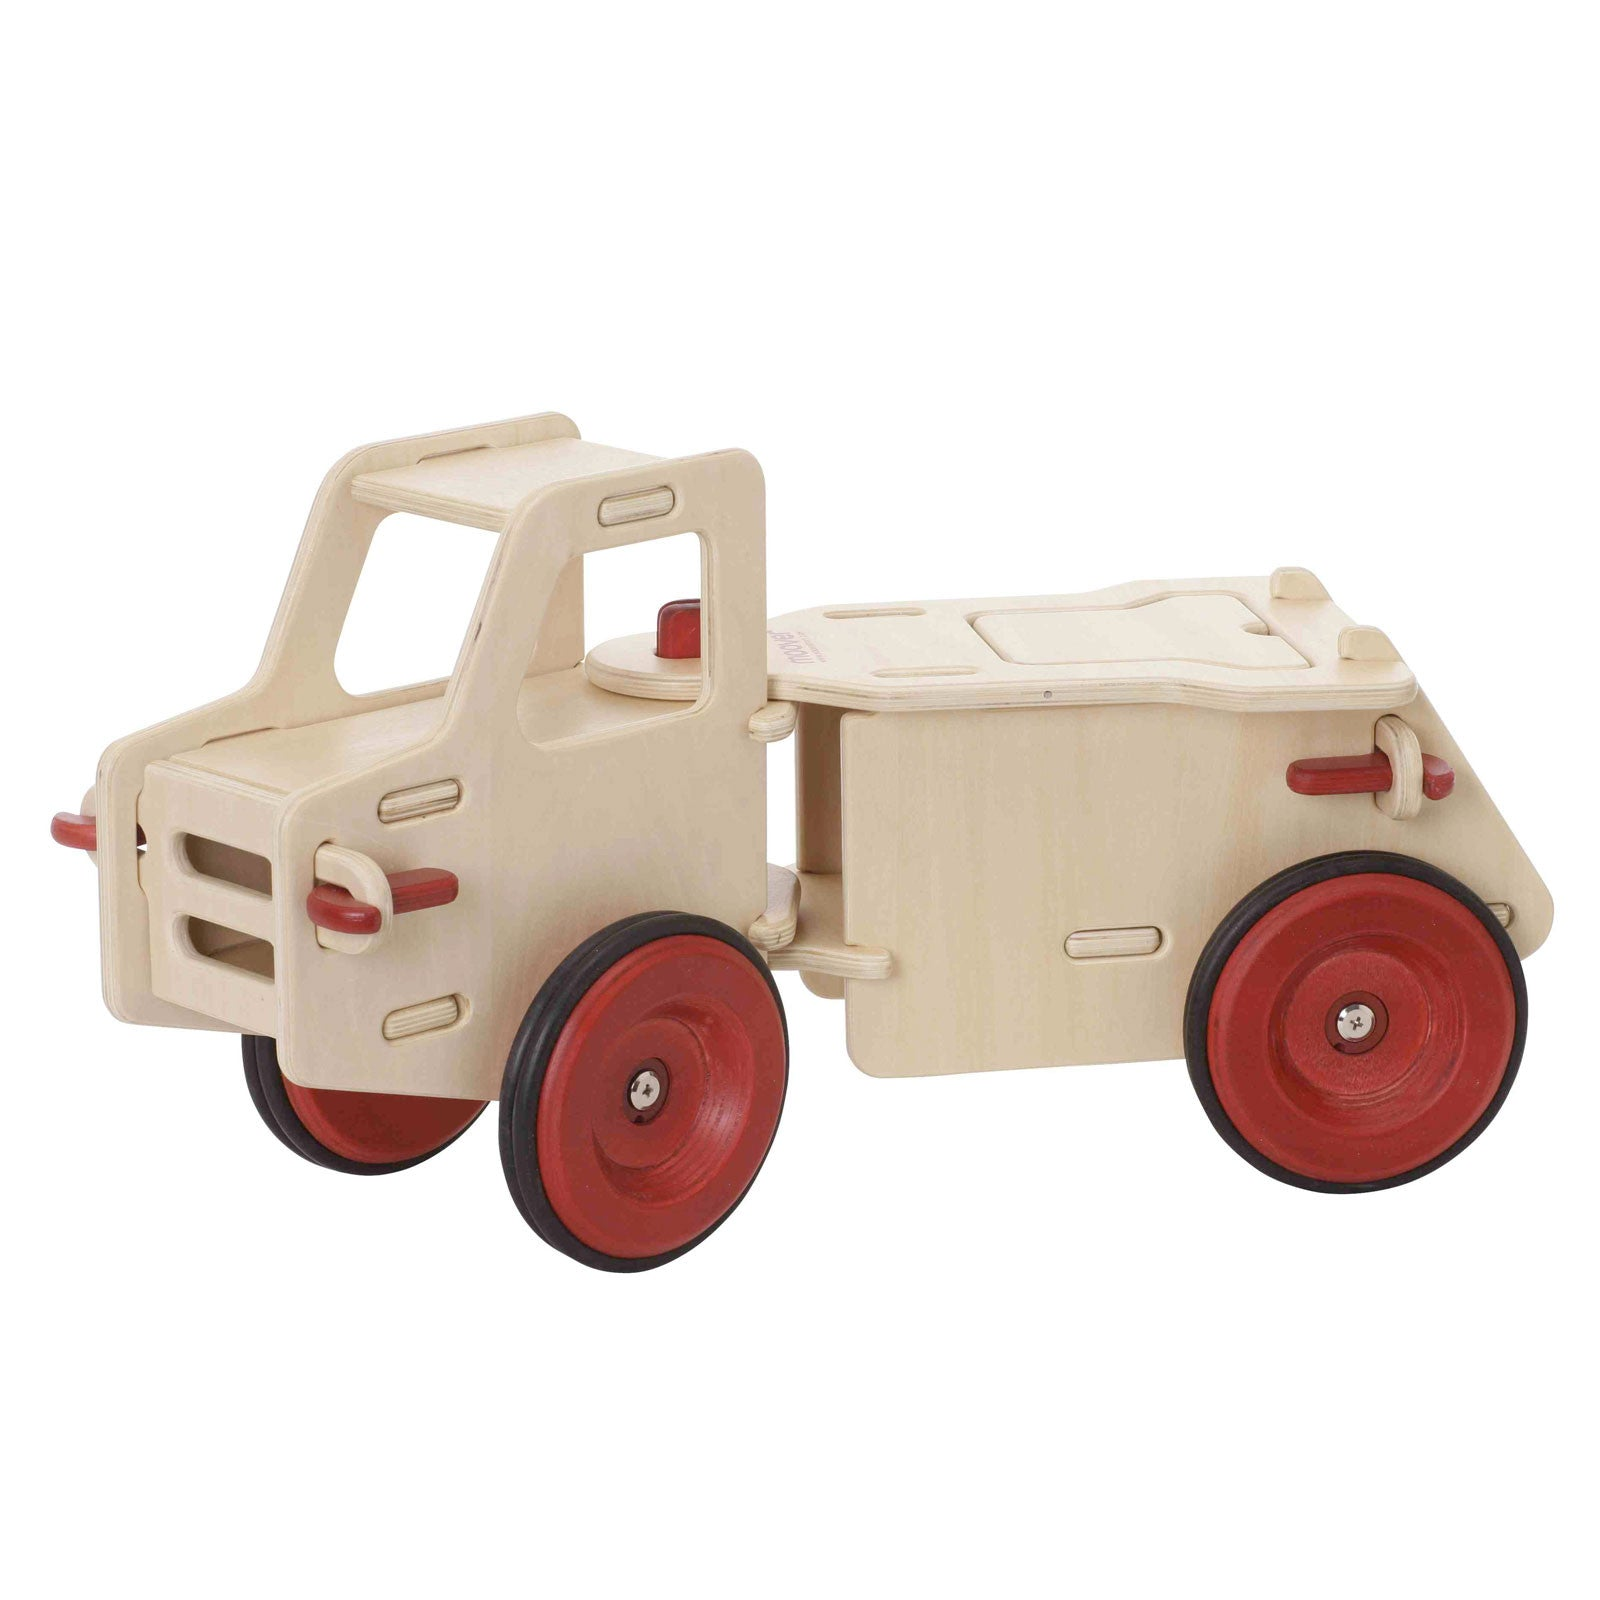 Moover Toys Dump Truck Moover Toys Play Vehicles Natural at Little Earth Nest Eco Shop